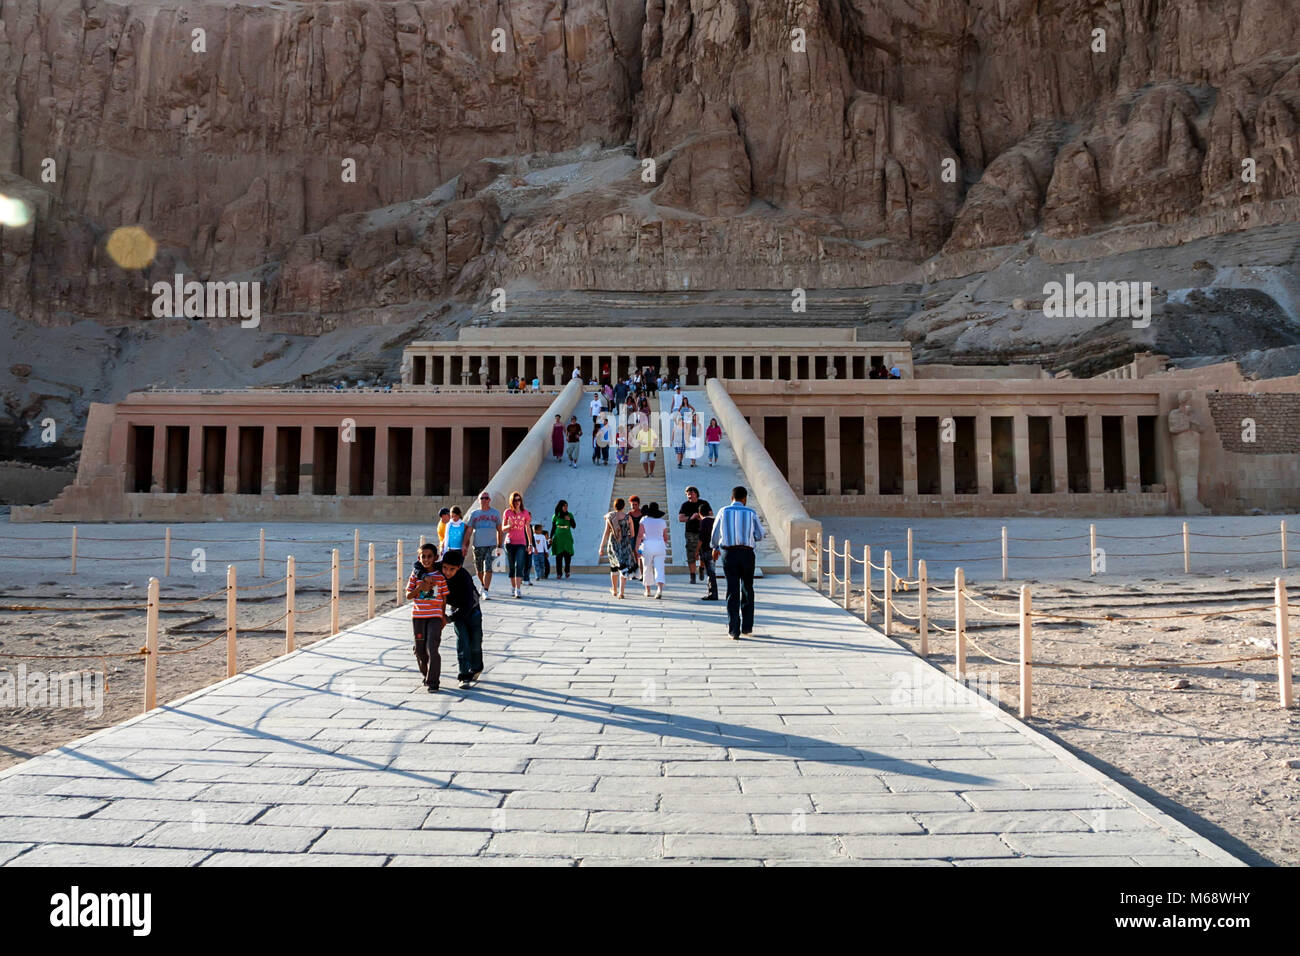 LUXOR, EGYPT - FEBRUARY 17, 2010: Mortuary Temple of Hatshepsut in Egypt - Stock Image